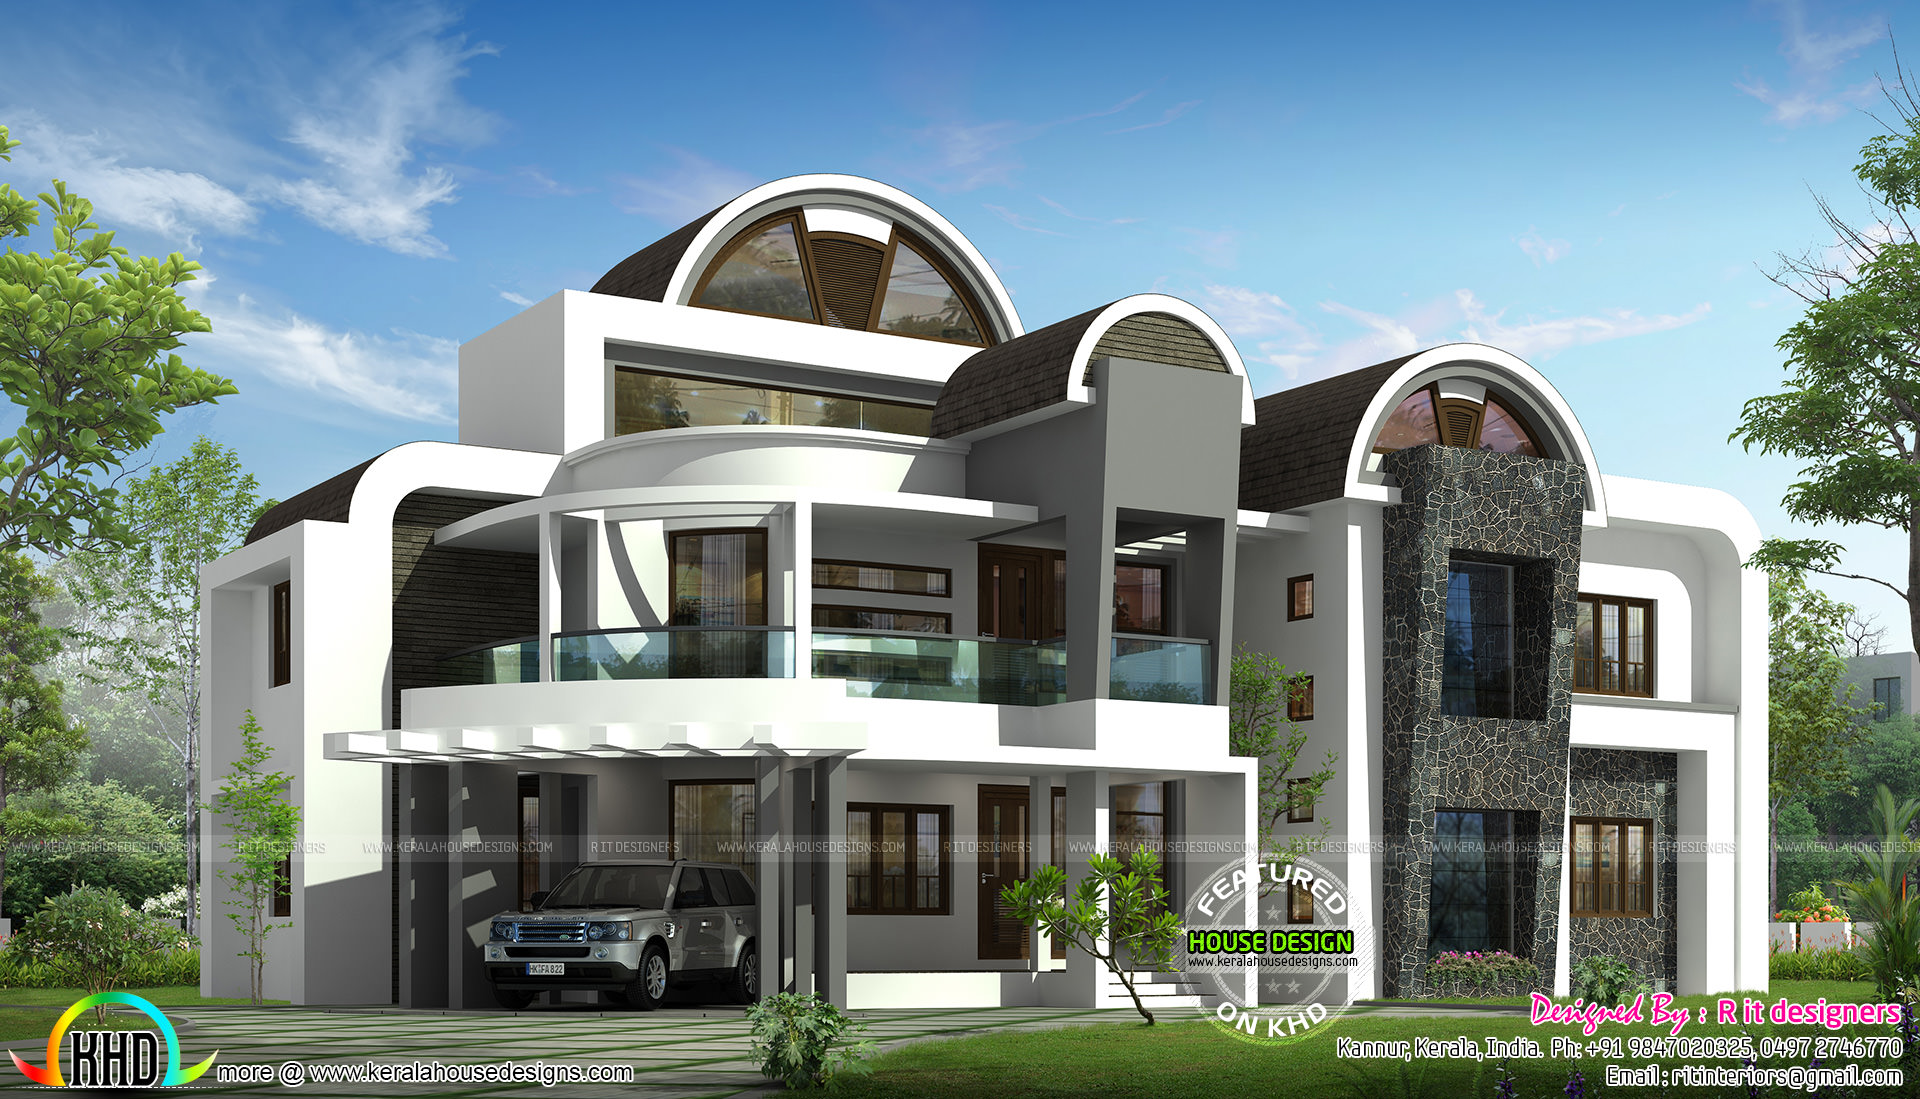 Half round roof unique house design kerala home design for Unique house plans